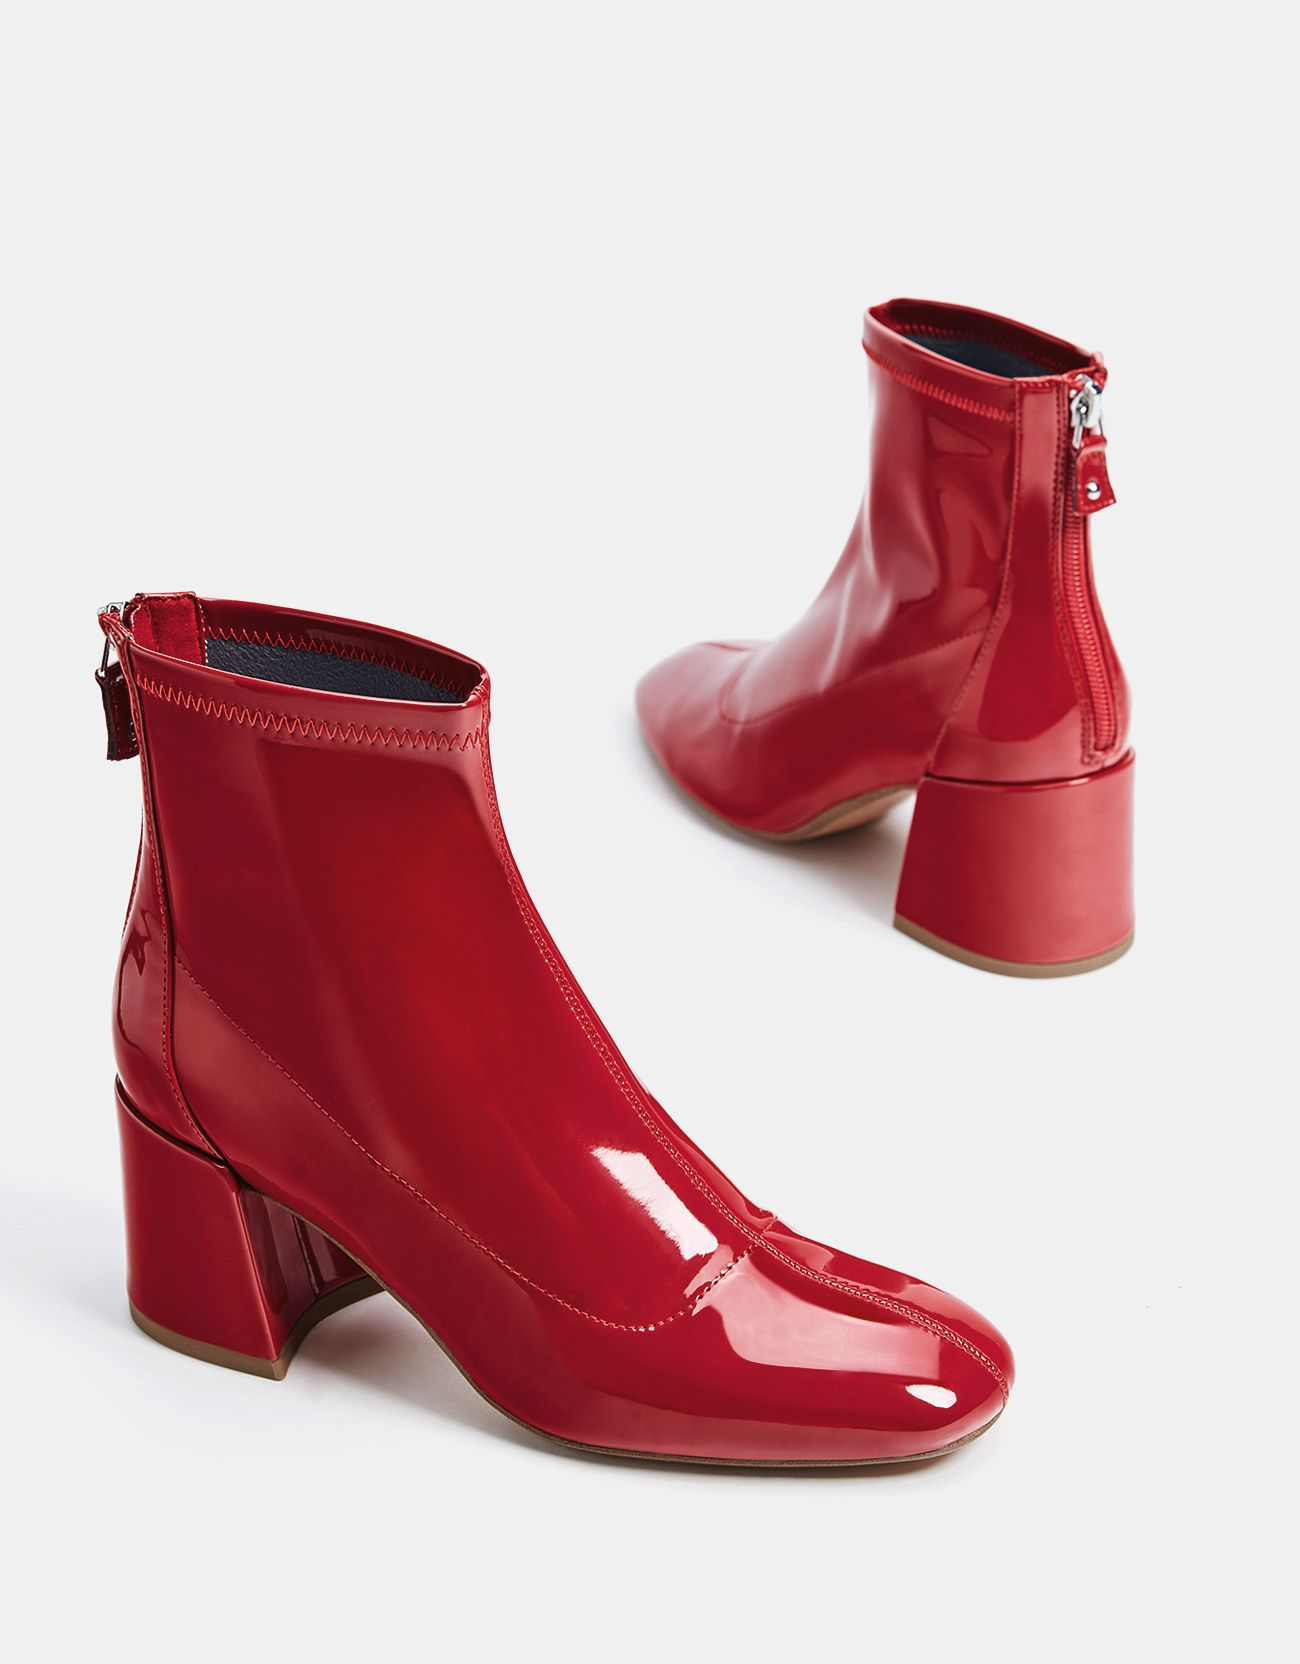 0732abad90c Mid-heel ankle boots with a patent finish - Ankle boots - Bershka United  States